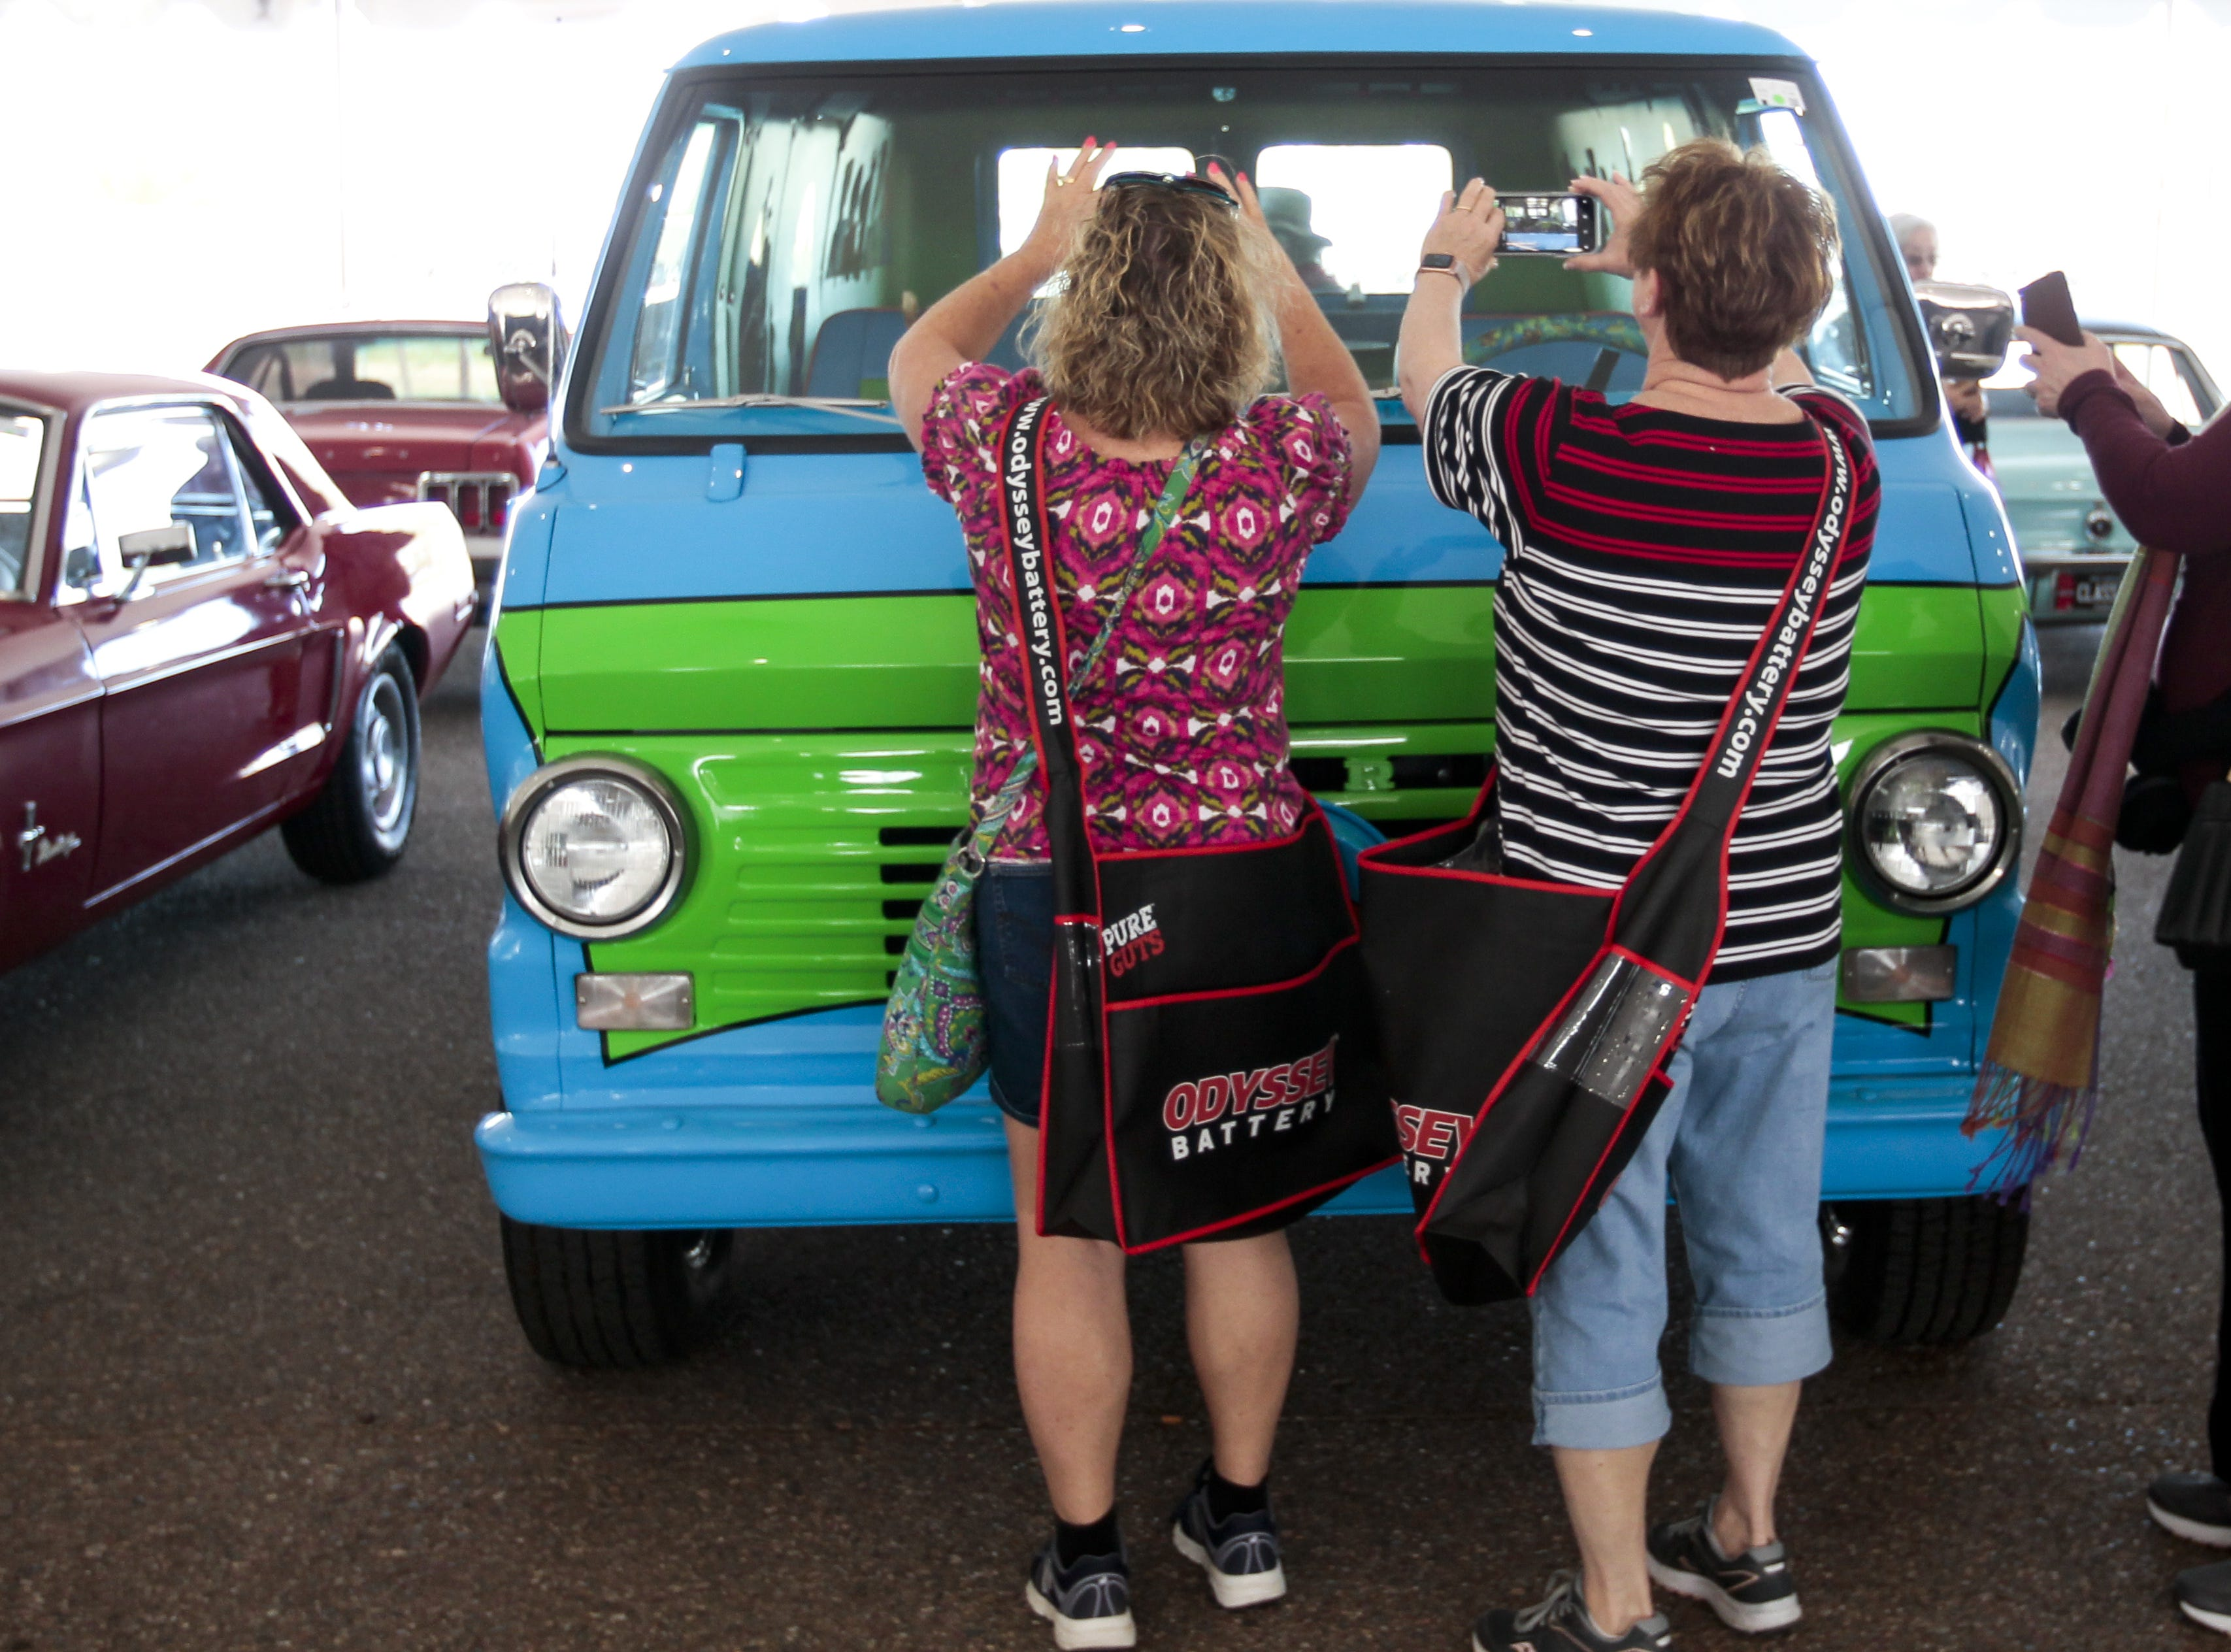 Bev Deckard, left, and Susie White take a photo of a van decked out to look like the Mystery Machine from Scooby Doo at the Barrett-Jackson Car Auction on Jan. 12, the first day of the event.